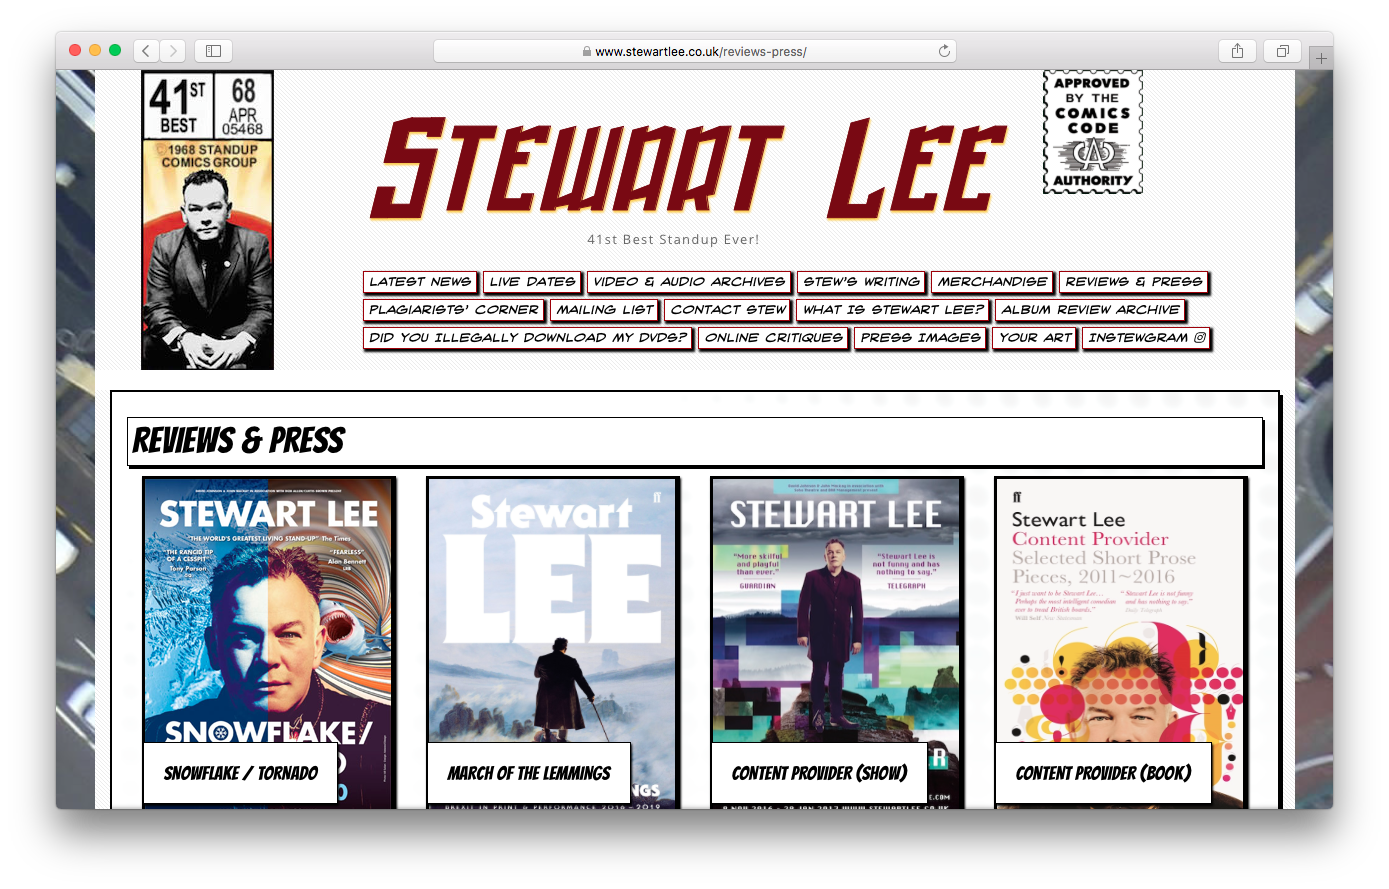 Stewart Lee - www.stewartlee.co.uk